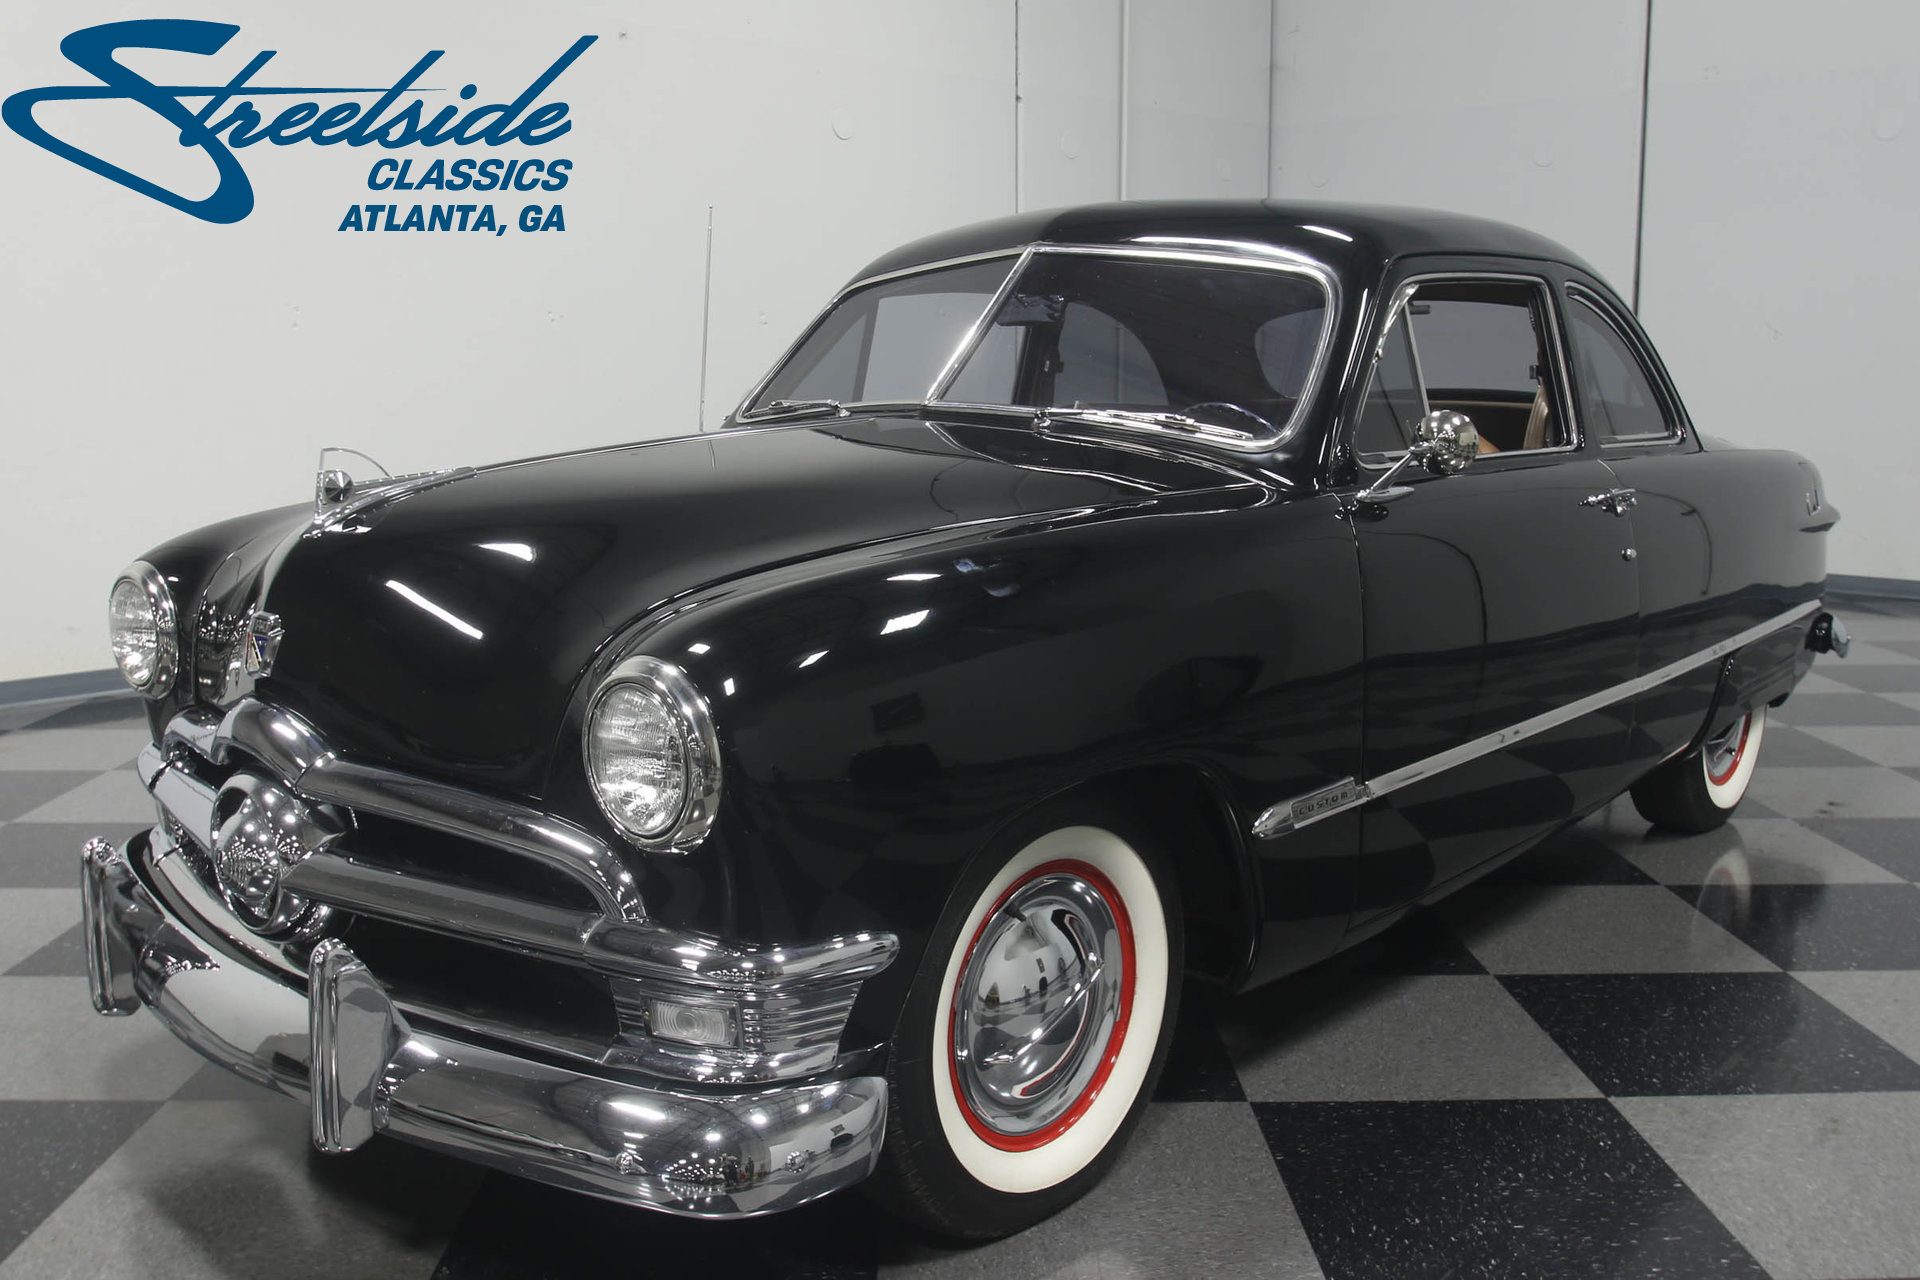 1950 ford custom streetside classics the nation 39 s. Black Bedroom Furniture Sets. Home Design Ideas